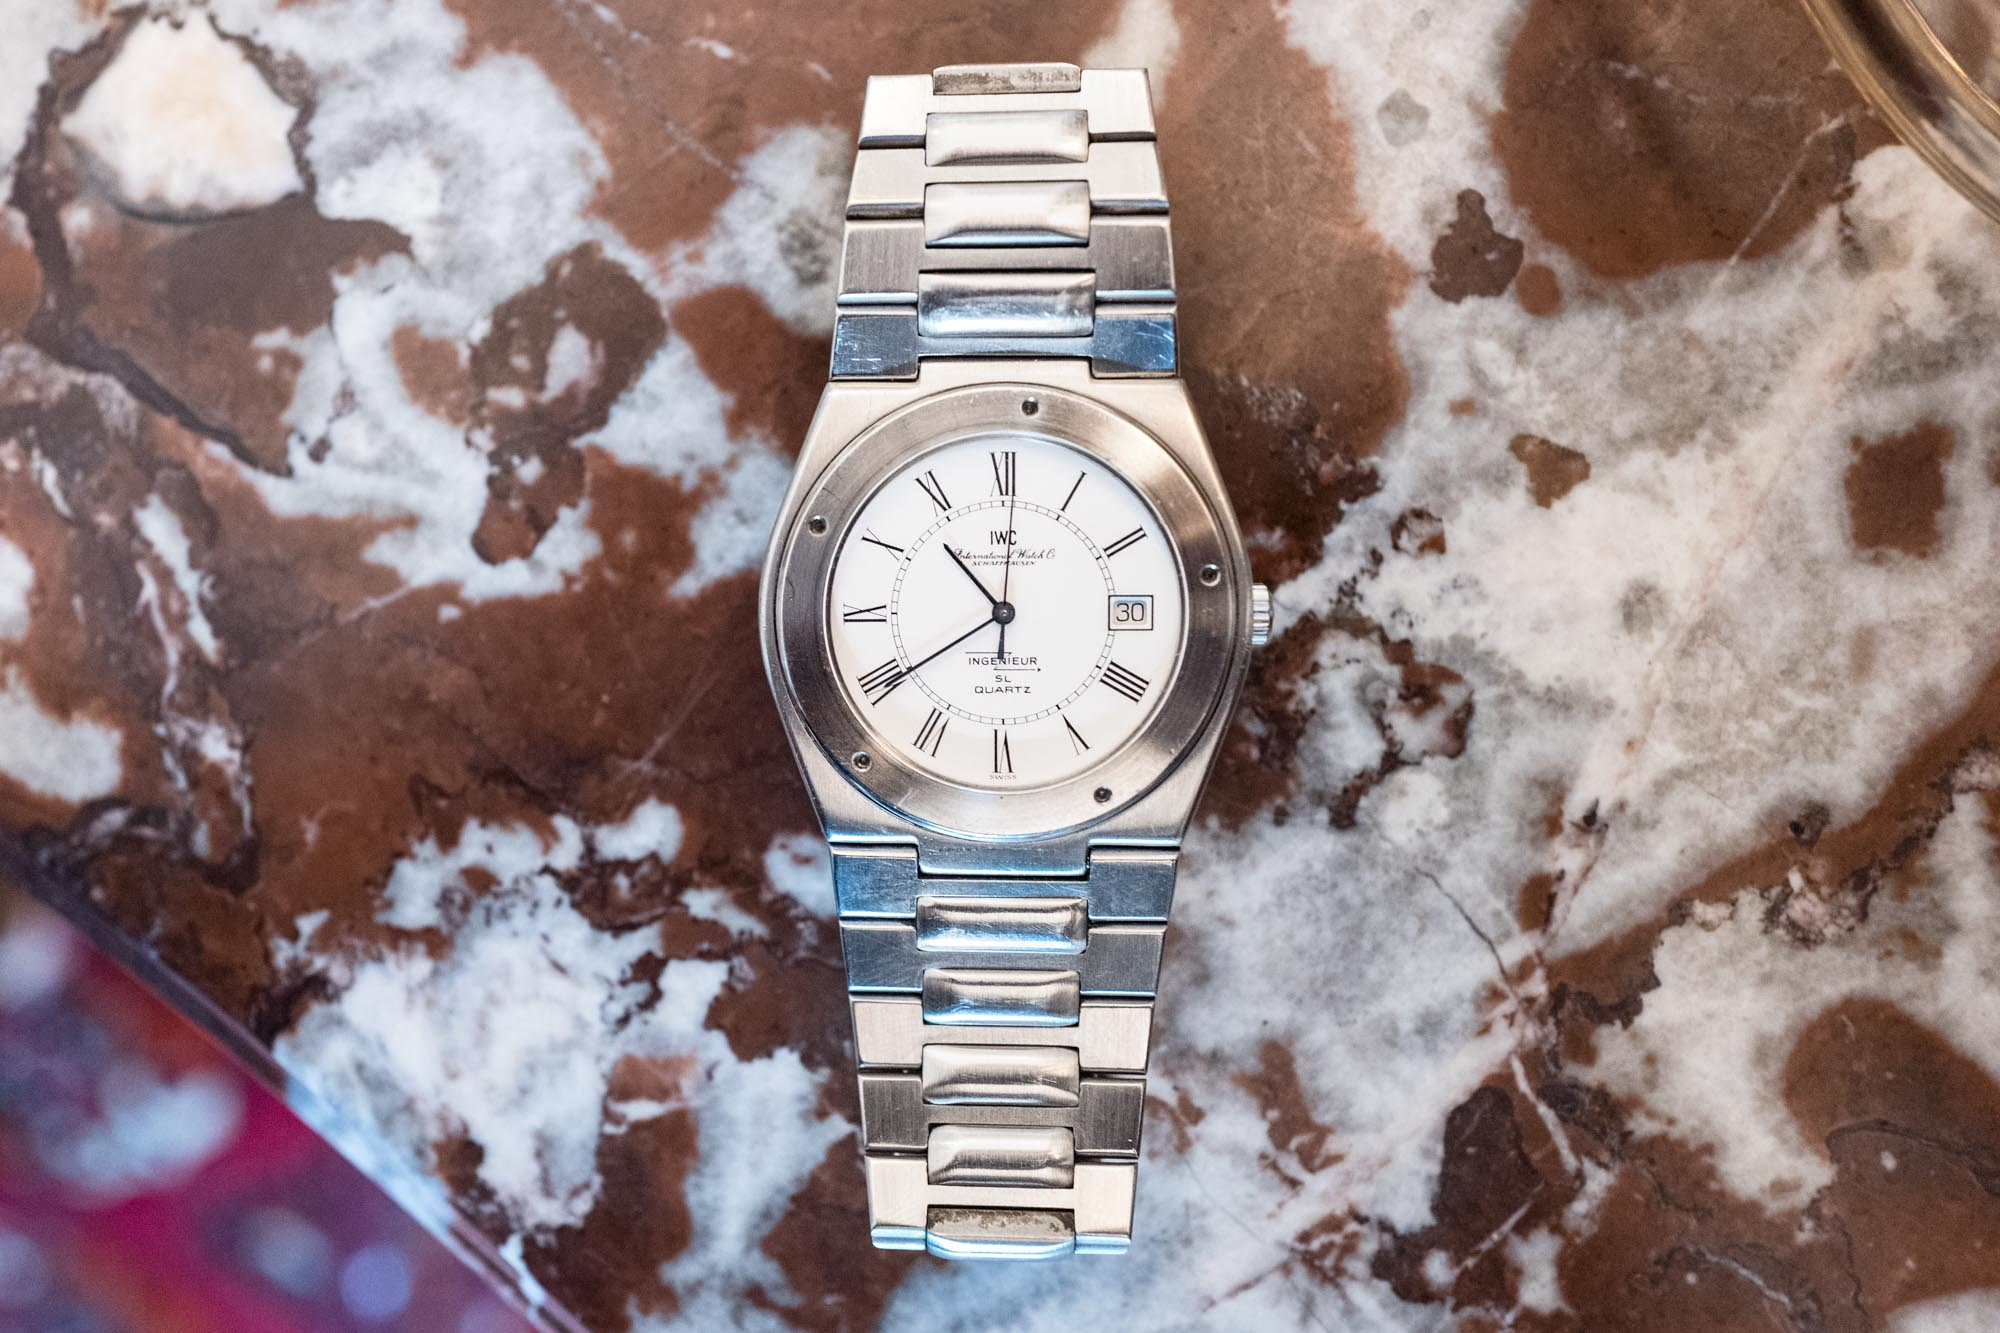 Antique Watches Basel - IWC Ingenieur SL